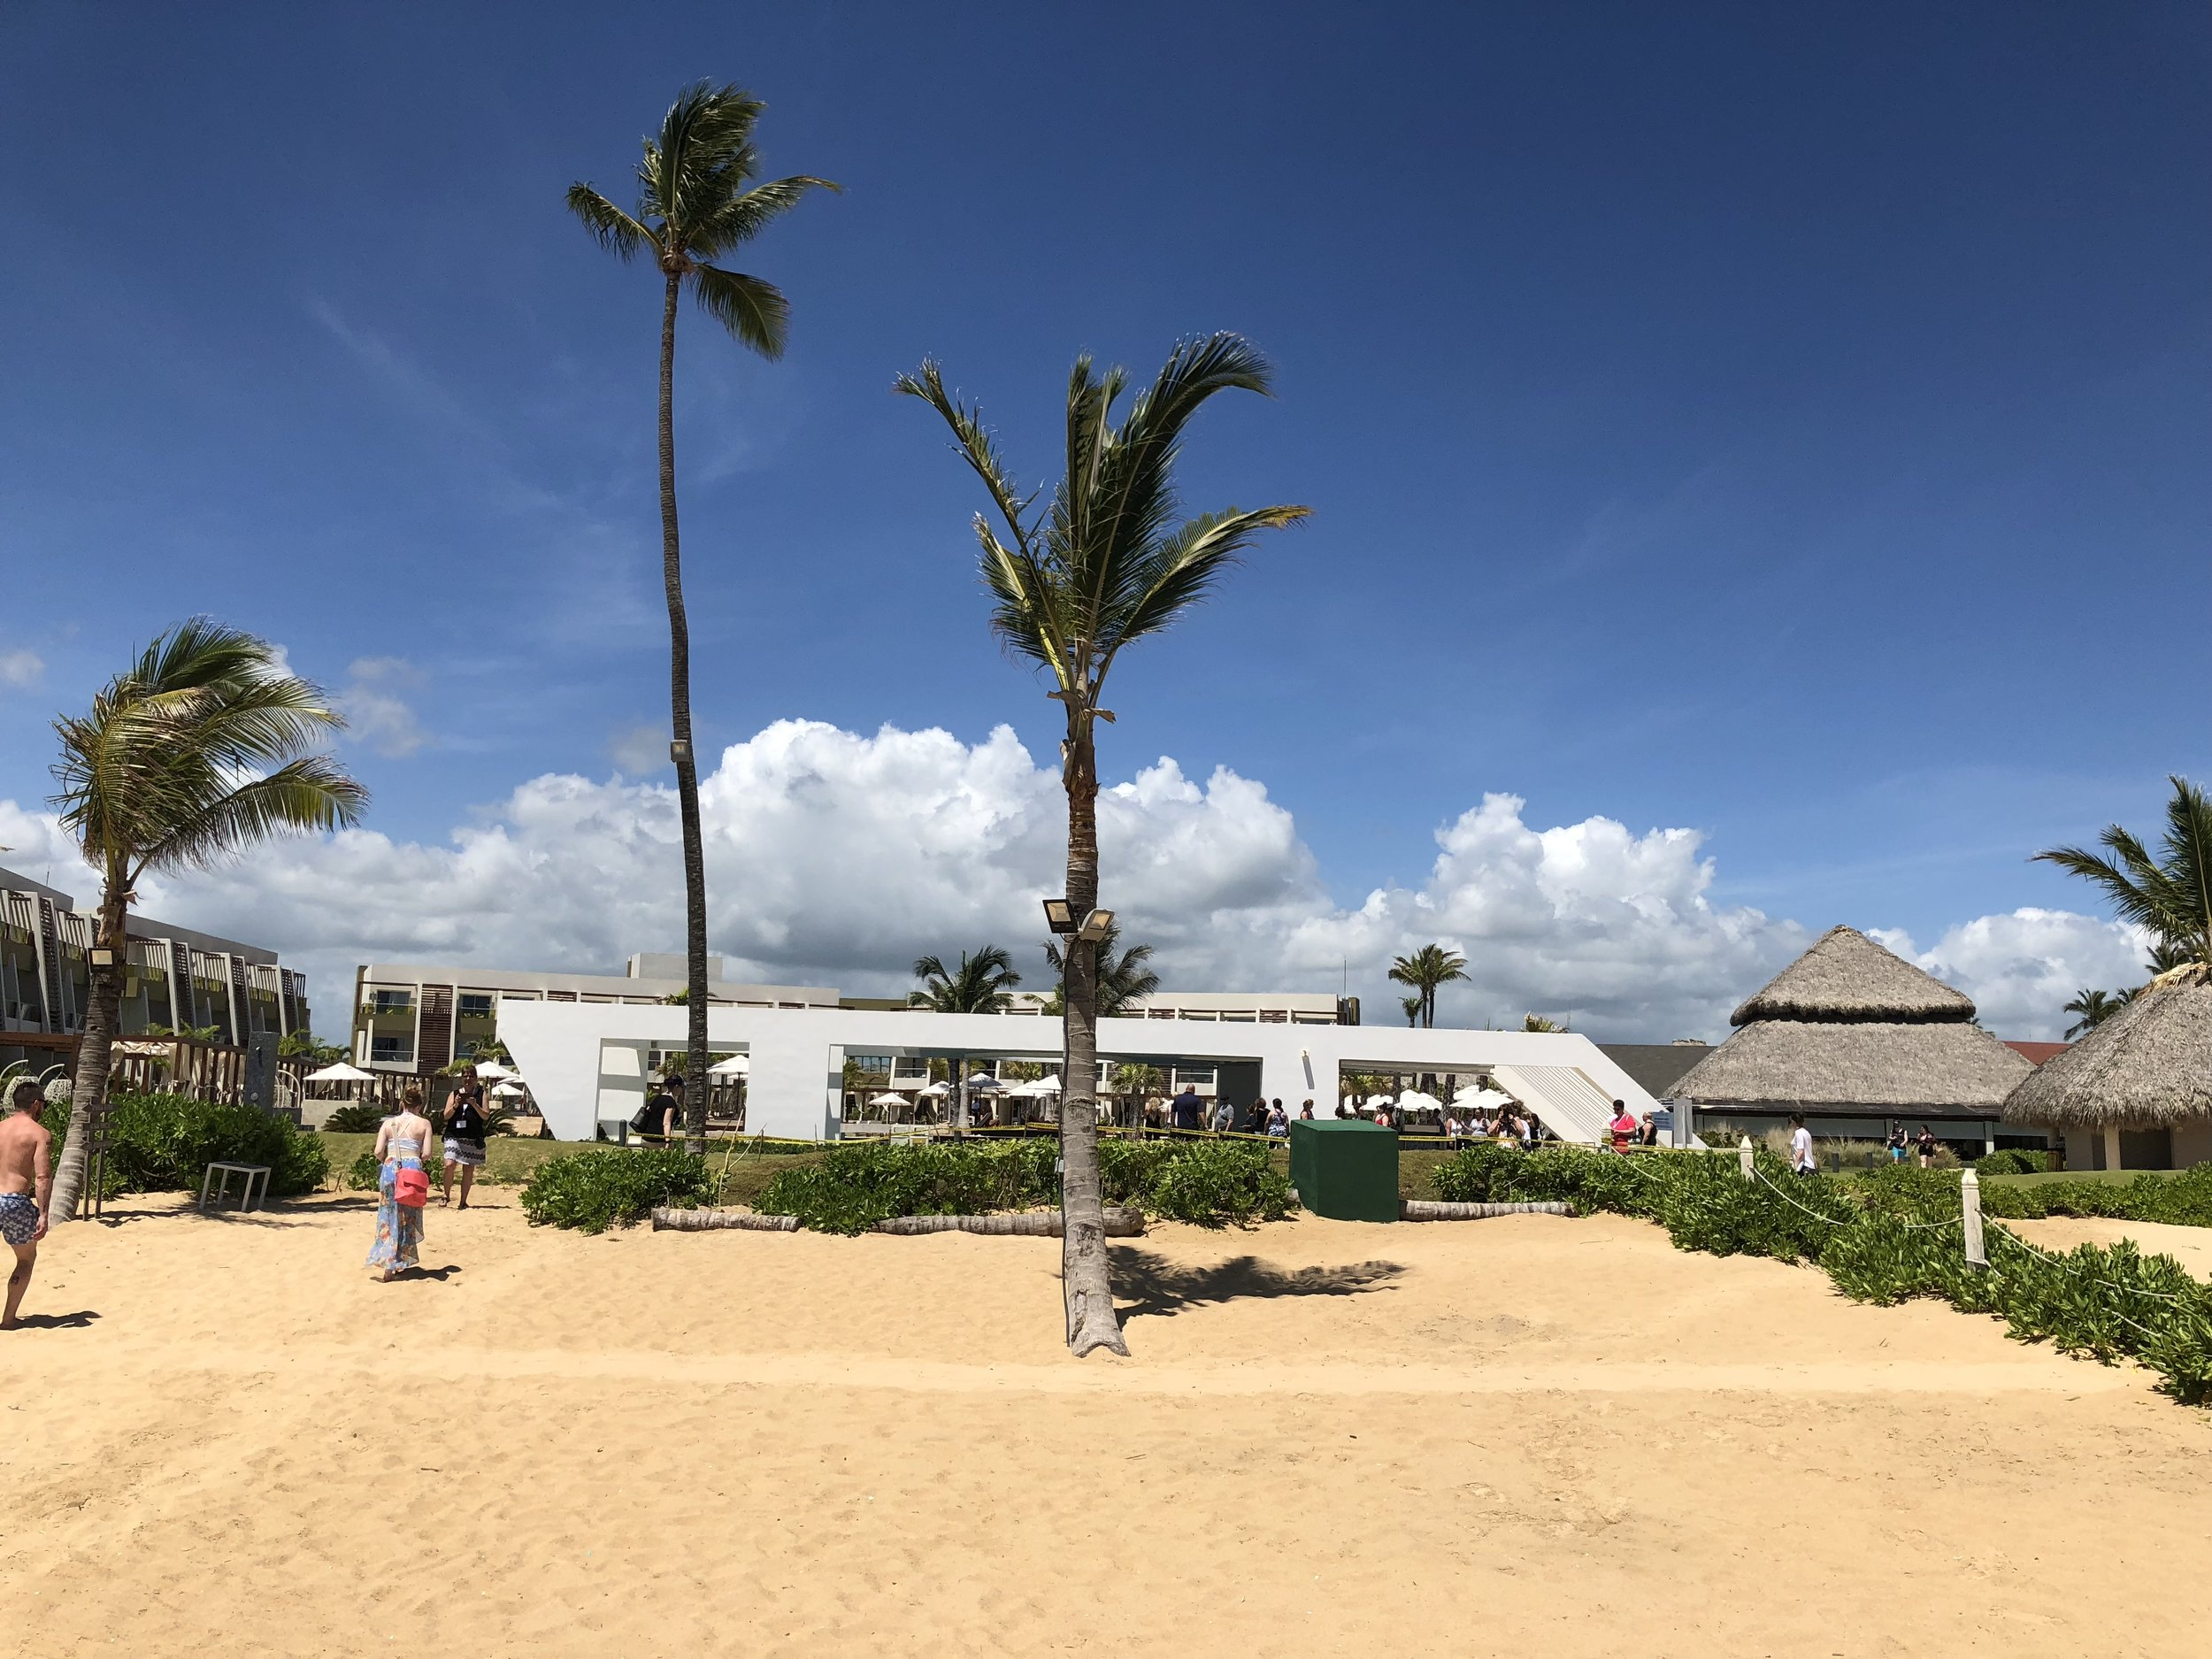 A view of the pool area from the beach.